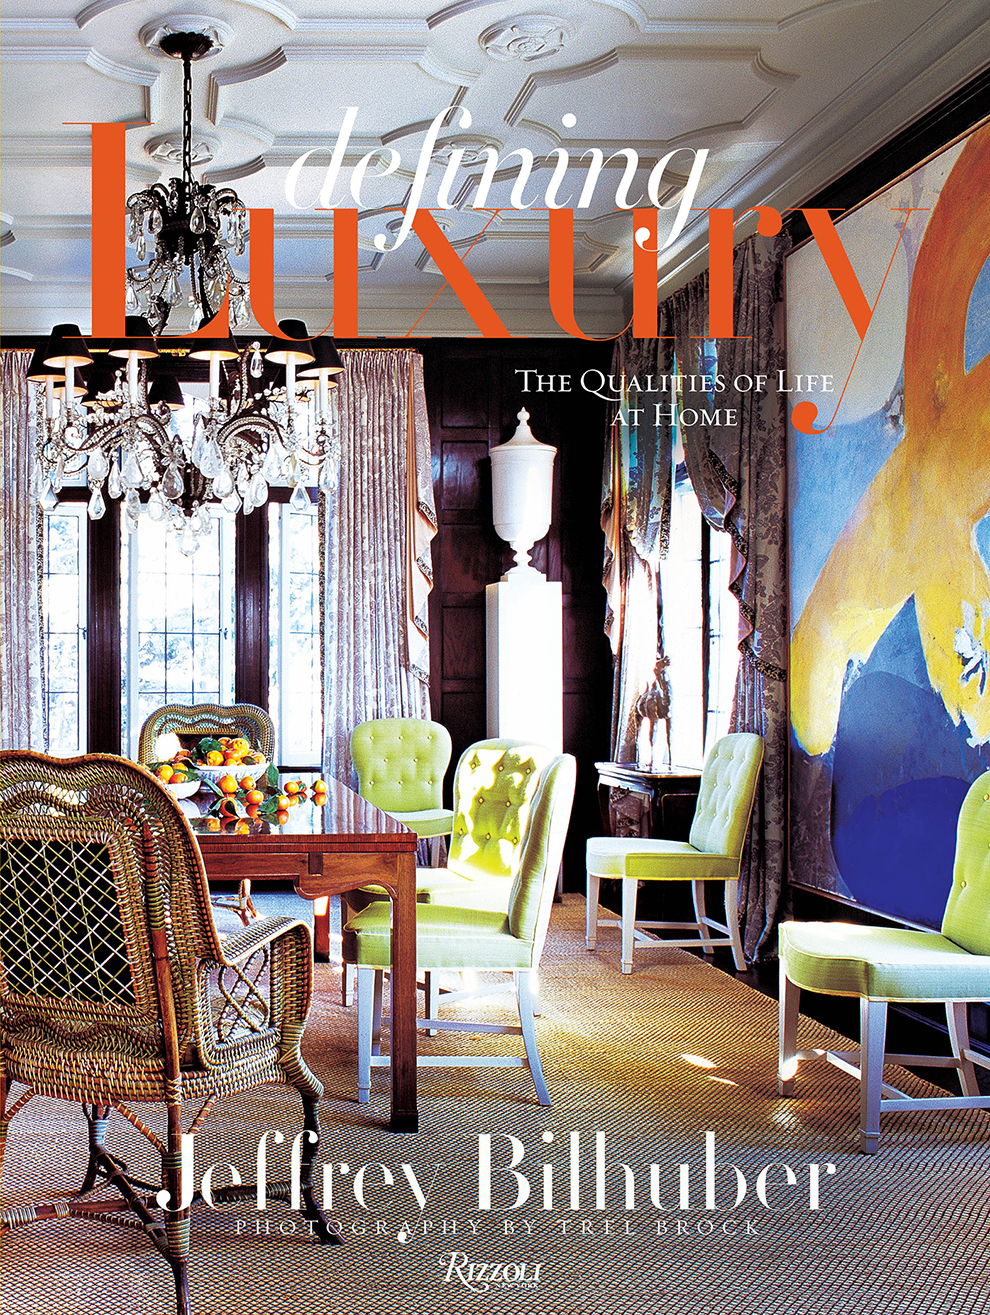 DefiningLuxury_FINAL COVER_10.6.08.jpg